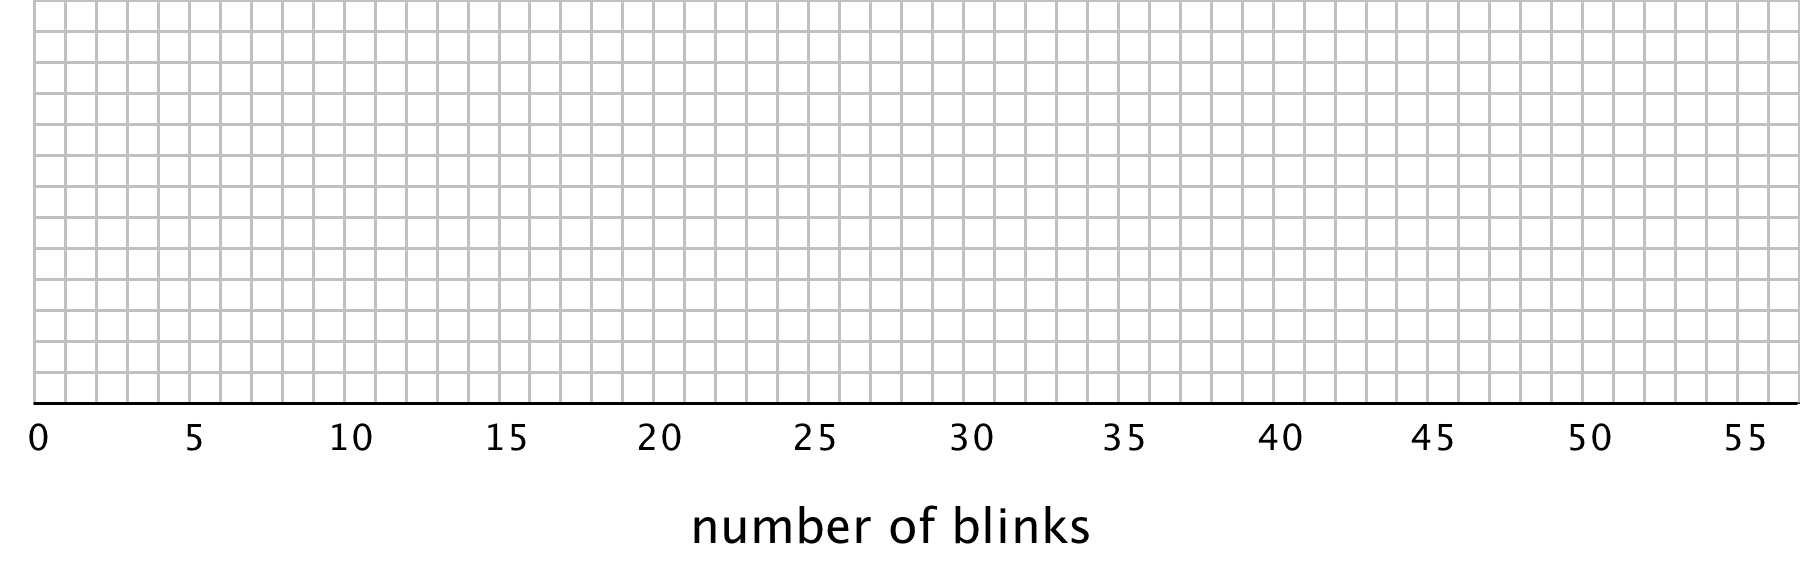 "A blank grid for ""number of blinks"" with the numbers 0 through 55, in increments of 5 indicated along the horizontal axis. Between each number indicated there are 4 evenly spaced vertical gridlines. There are 13 horizontal gridlines."